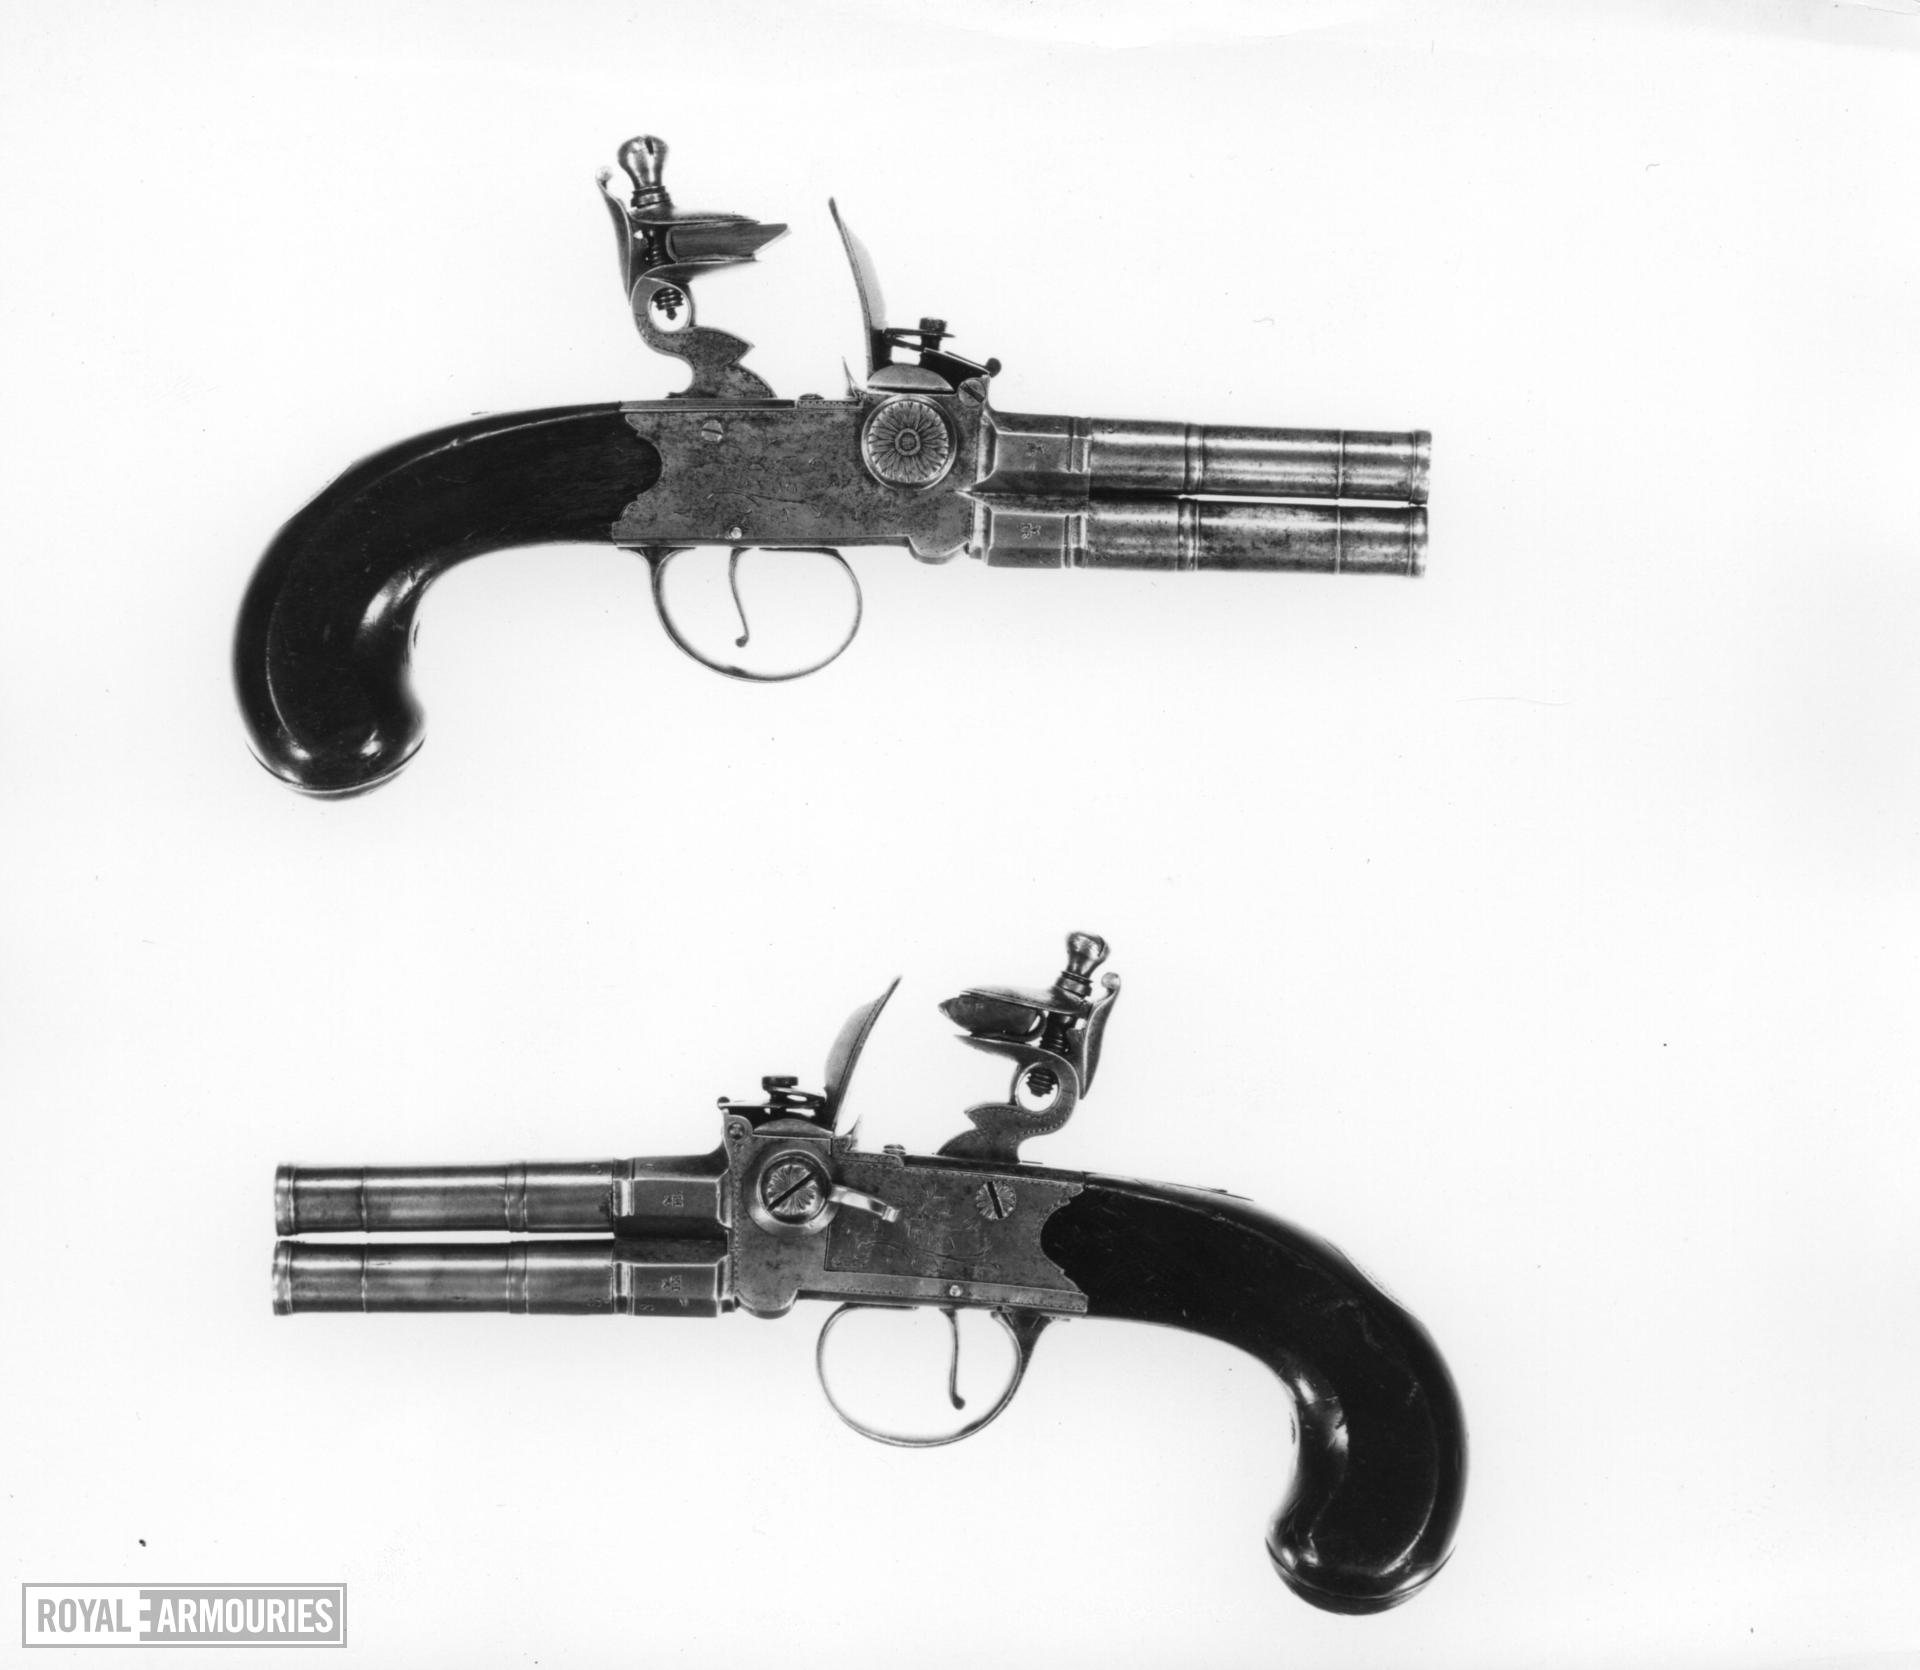 Flintlock four-barrelled pistol